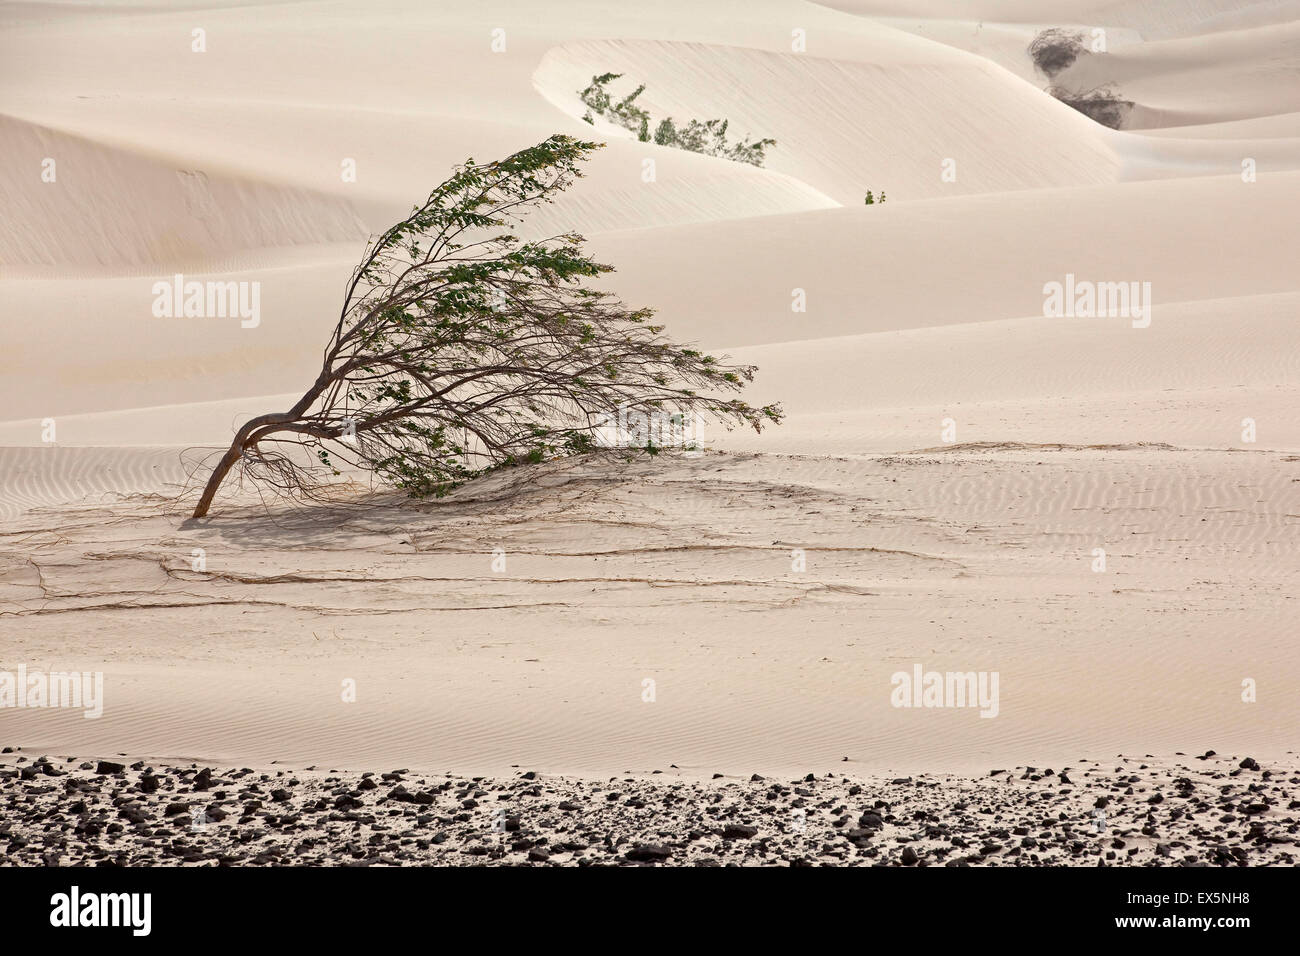 Shrubs growing in white sand dunes on the island Boa Vista, Cape Verde / Cabo Verde, Western Africa - Stock Image